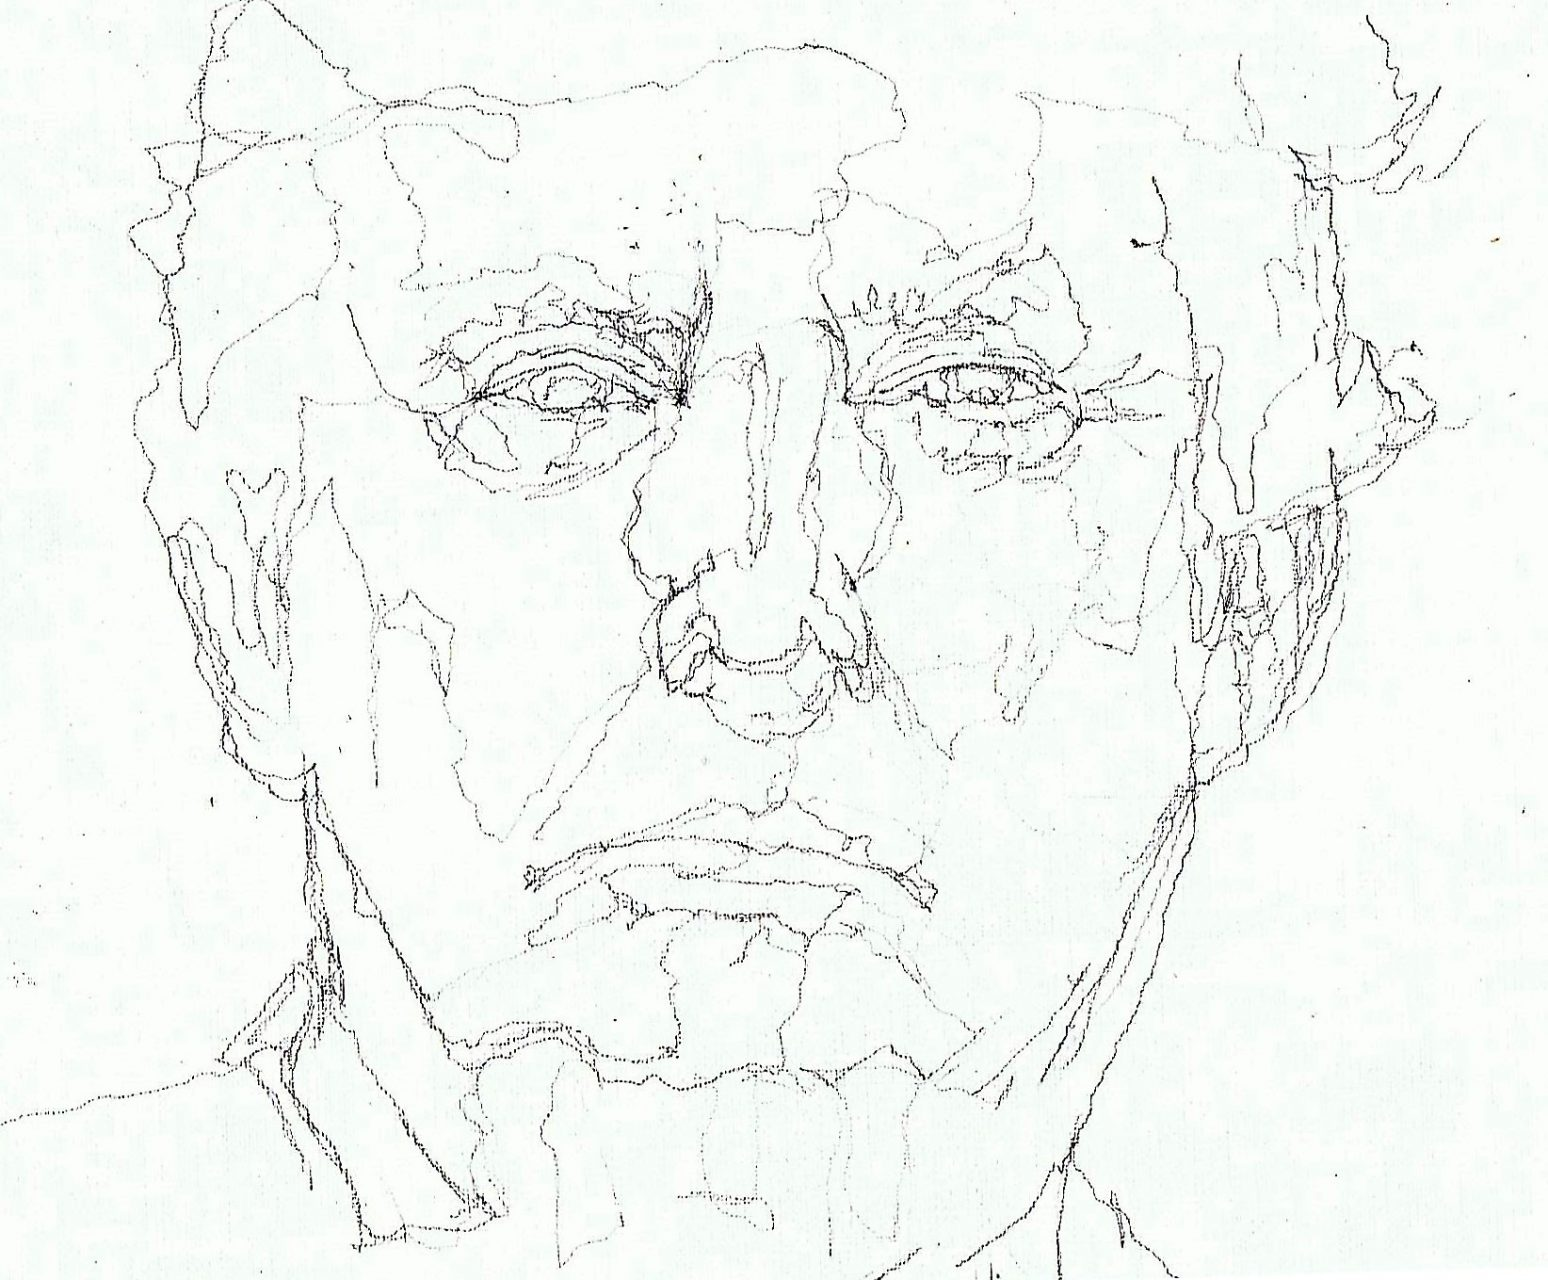 365 dagen een portret Donald Trump, president VS Potlood 19c25